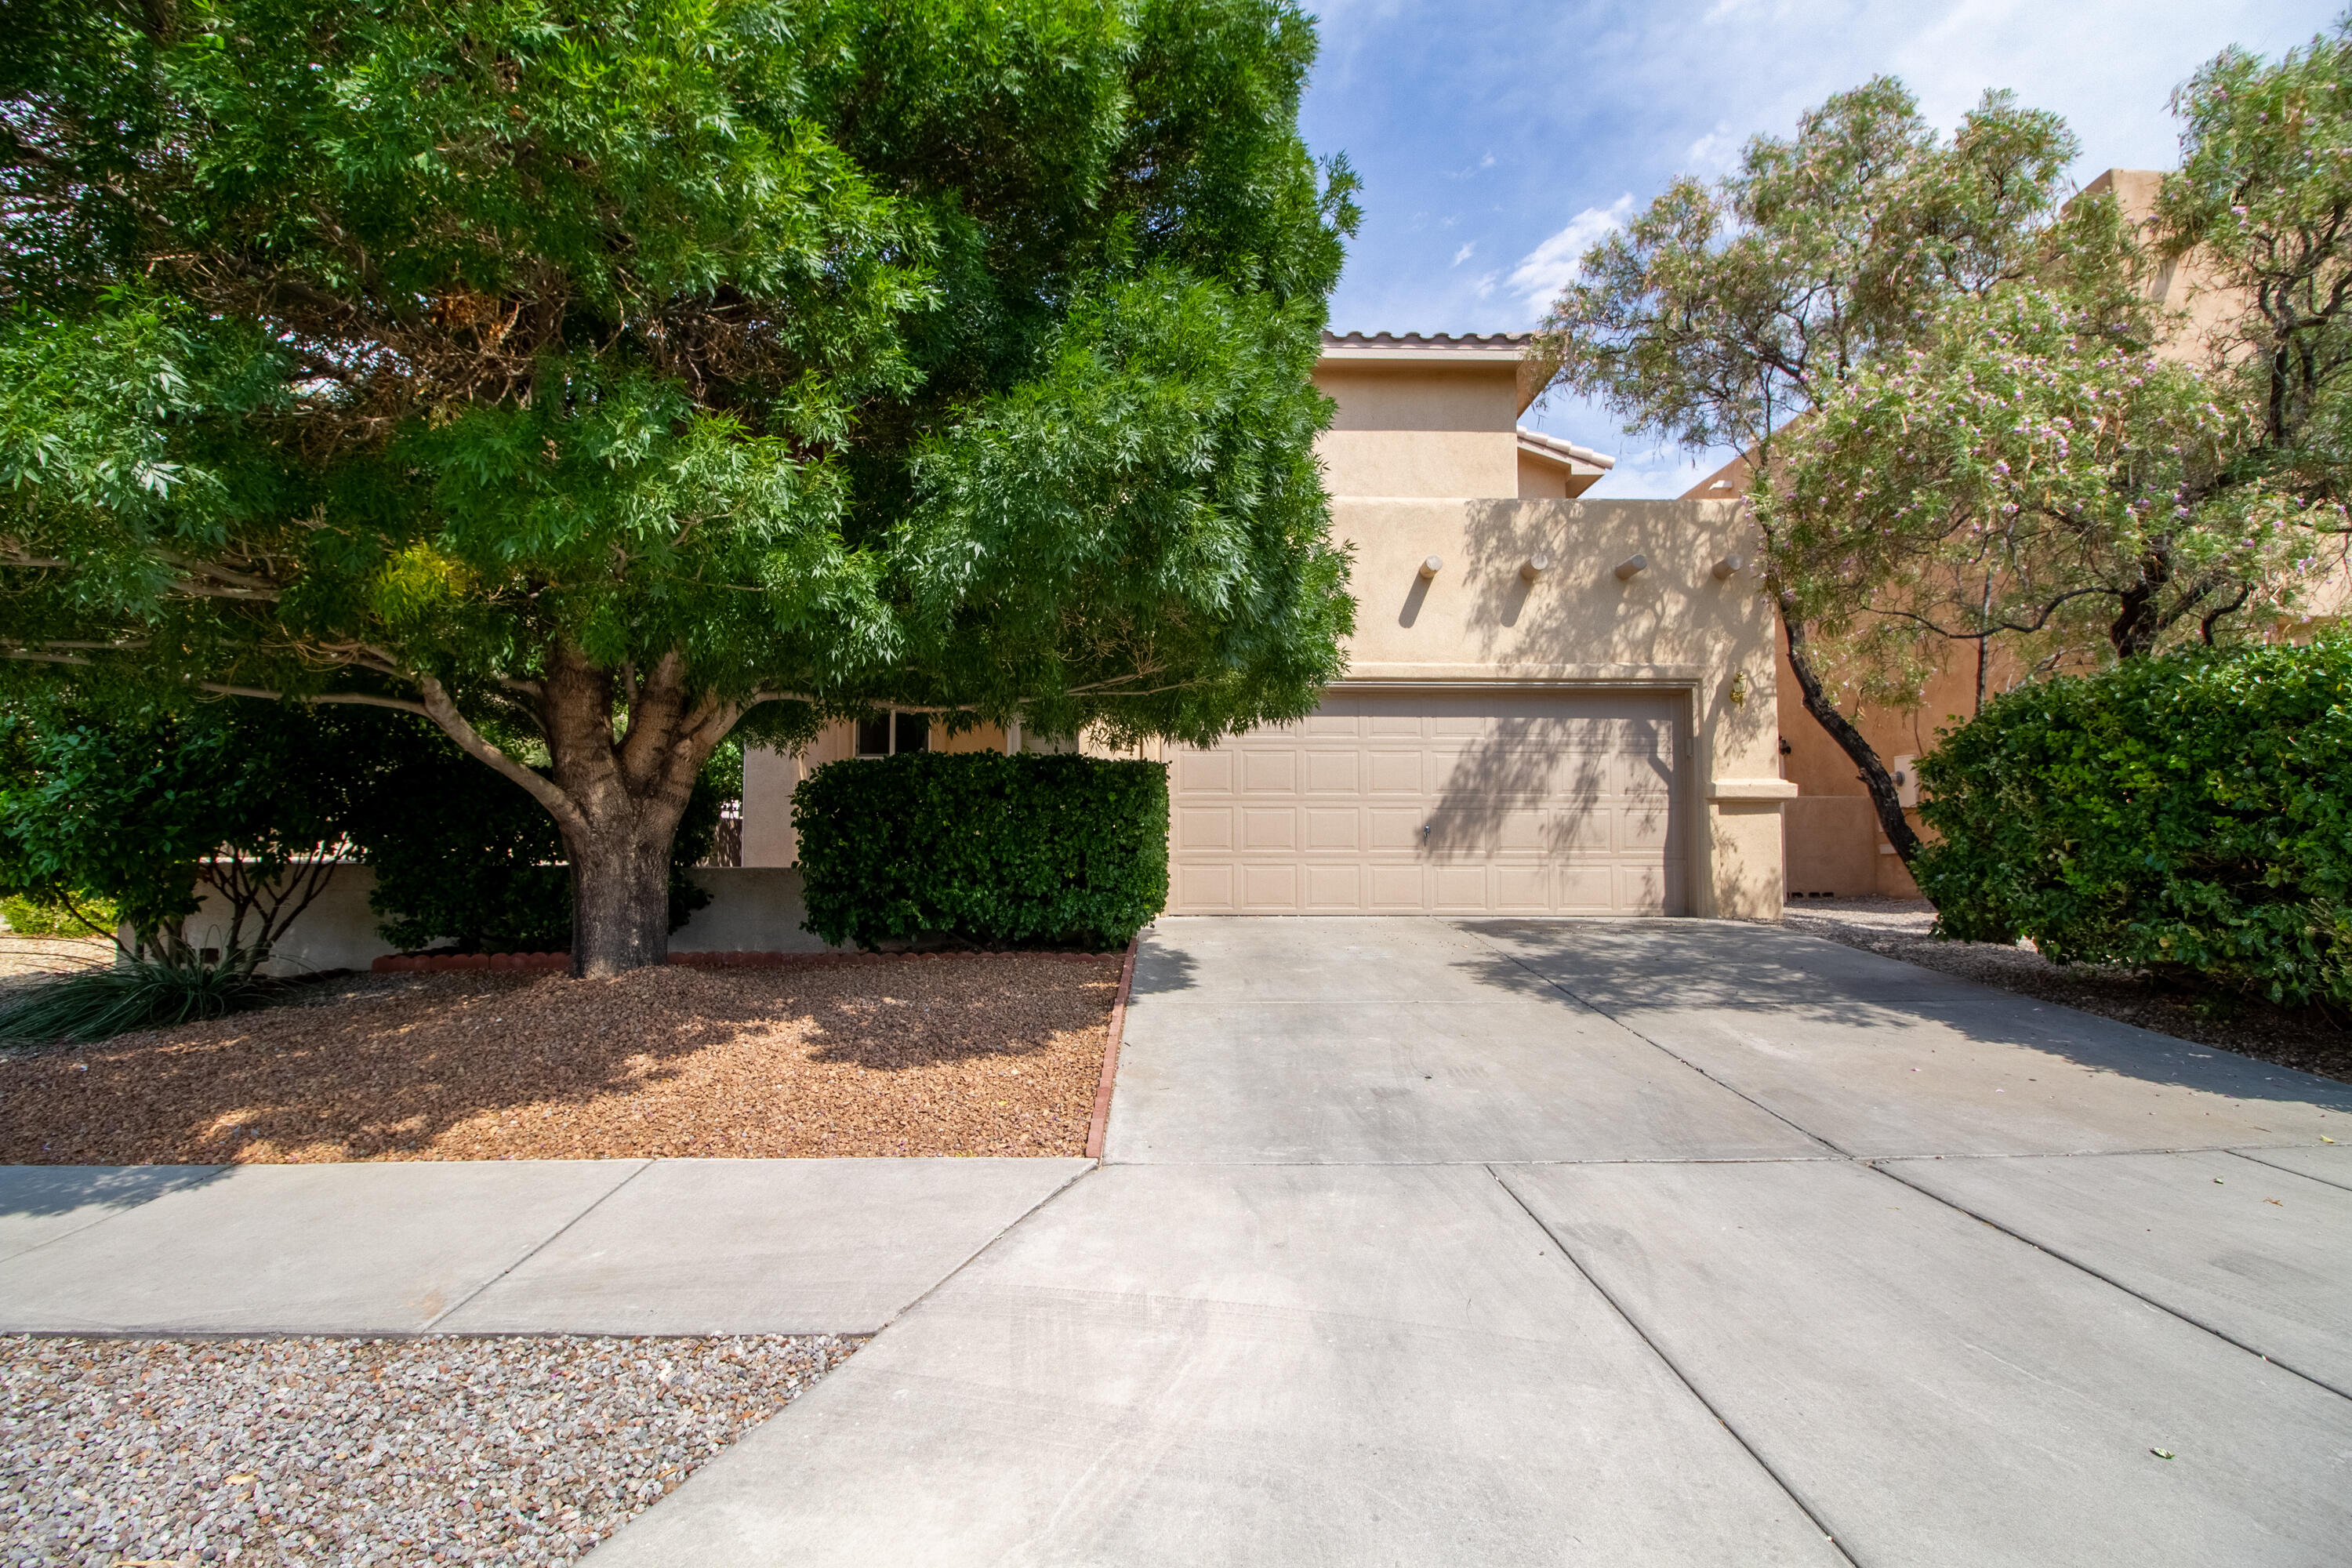 Location location location!! This pristine like new home is located in the exclusive Vista Del Norte Neighborhood. The backyard is gorgeous and has been impeccably maintained. The refrigerated air will keep you cool in these hot summer months! The home has new carpet, fresh paint, and a brand new stucco job.